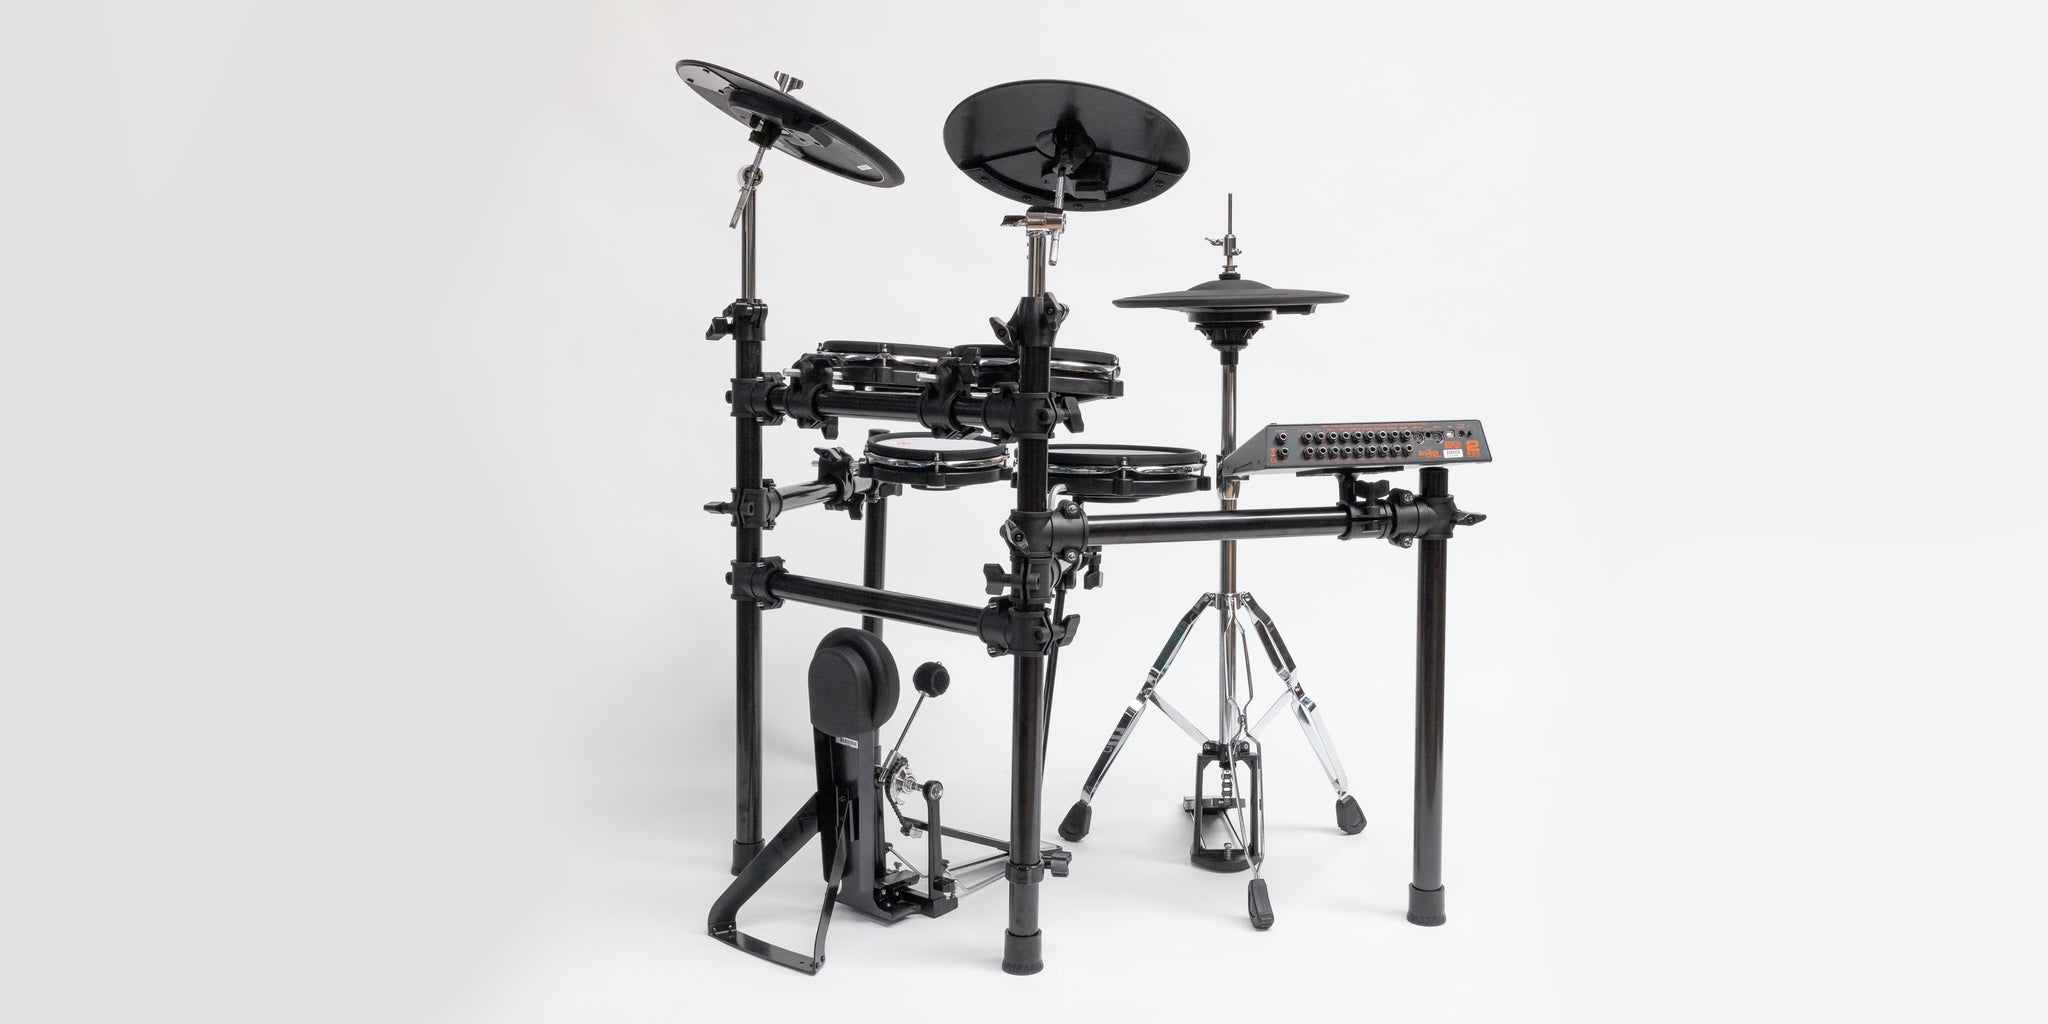 2box Speedlight Electronic Drum Kit featuring the DrumIt Three module